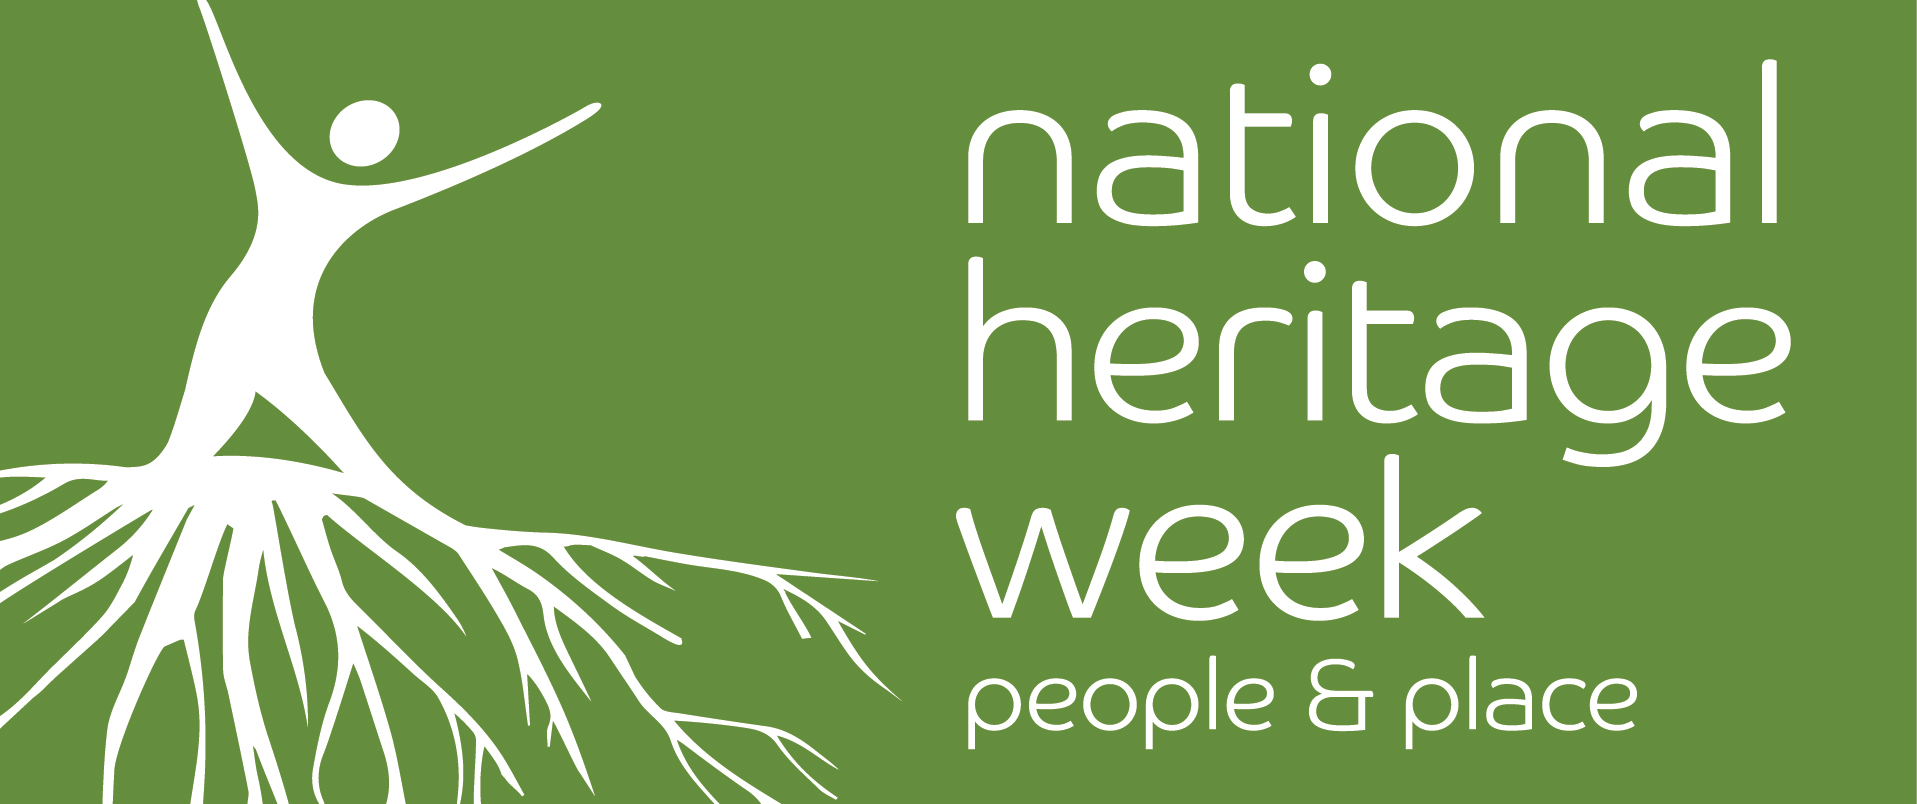 National_Heritage_Week_LOGO_2016_GREEN-2